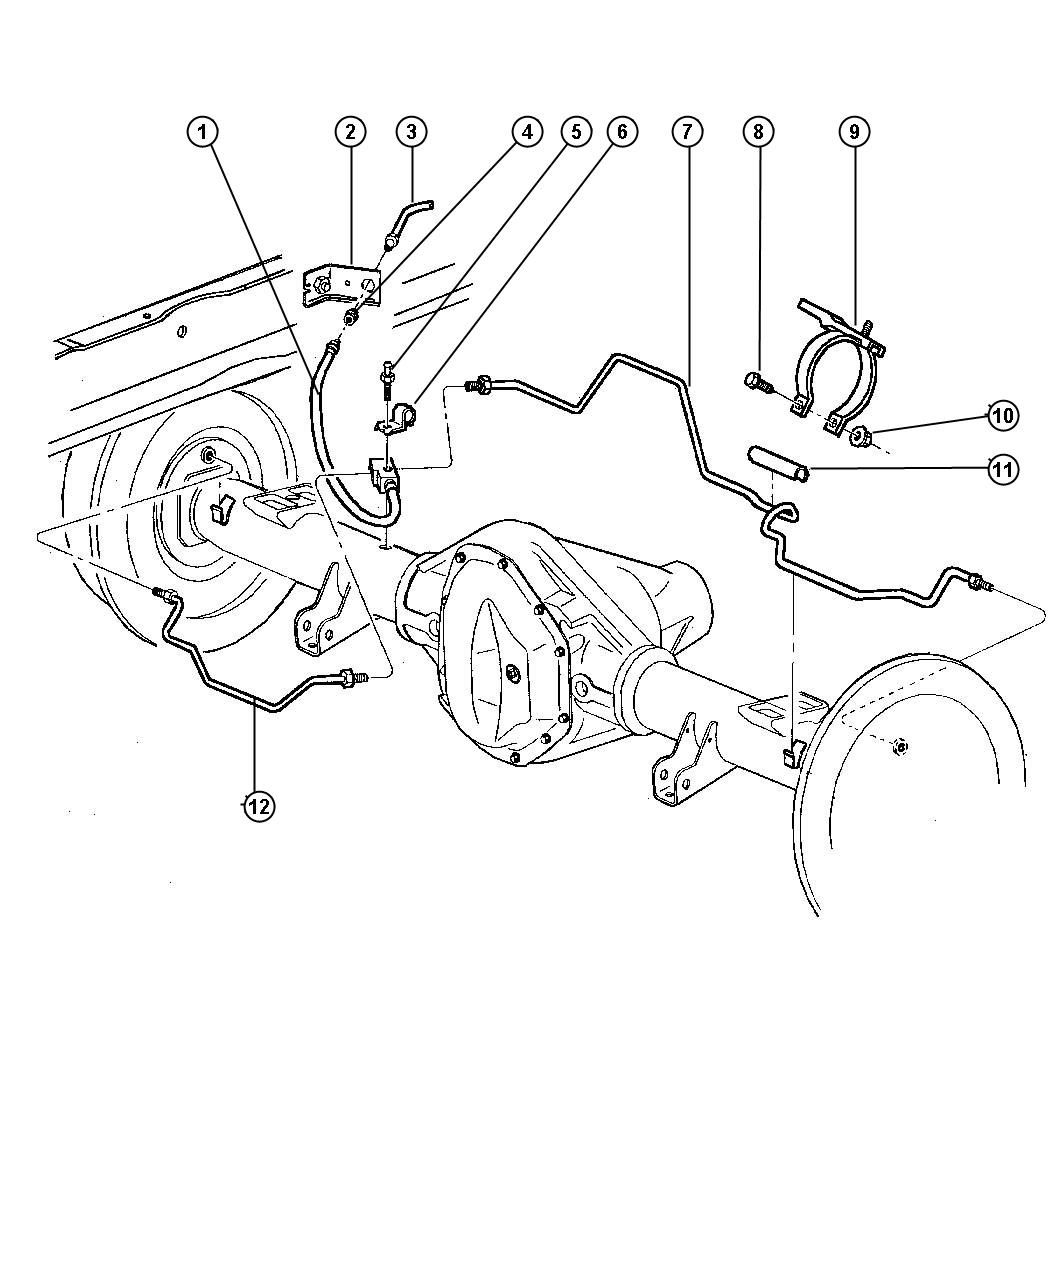 2003 dodge ram rear brake diagram wiring diagram 2001 dodge ram brake diagram 2003